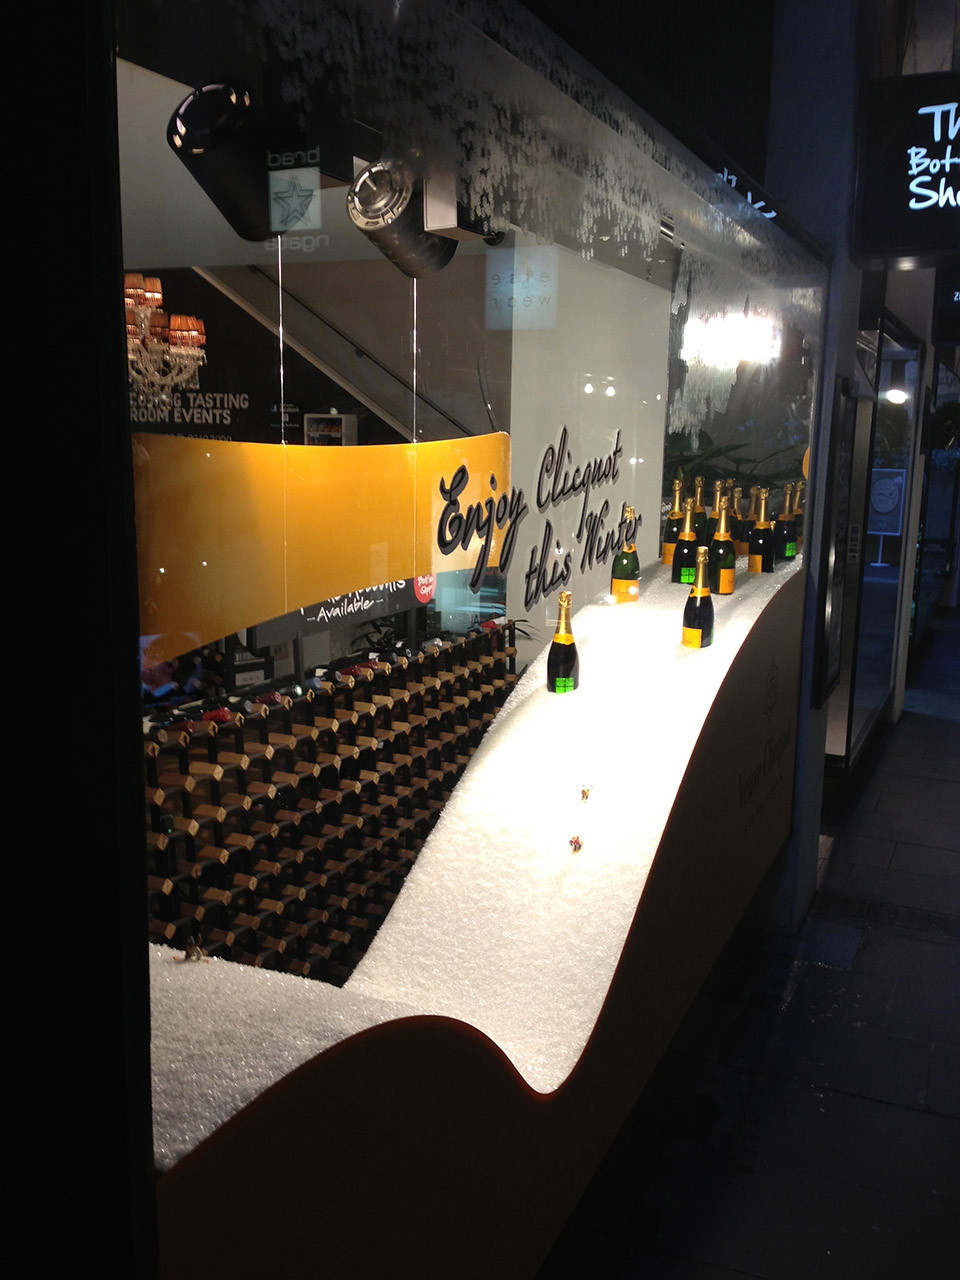 Veuve Clicquot window display Ivy Bottle Shop- display design by Objet Bart